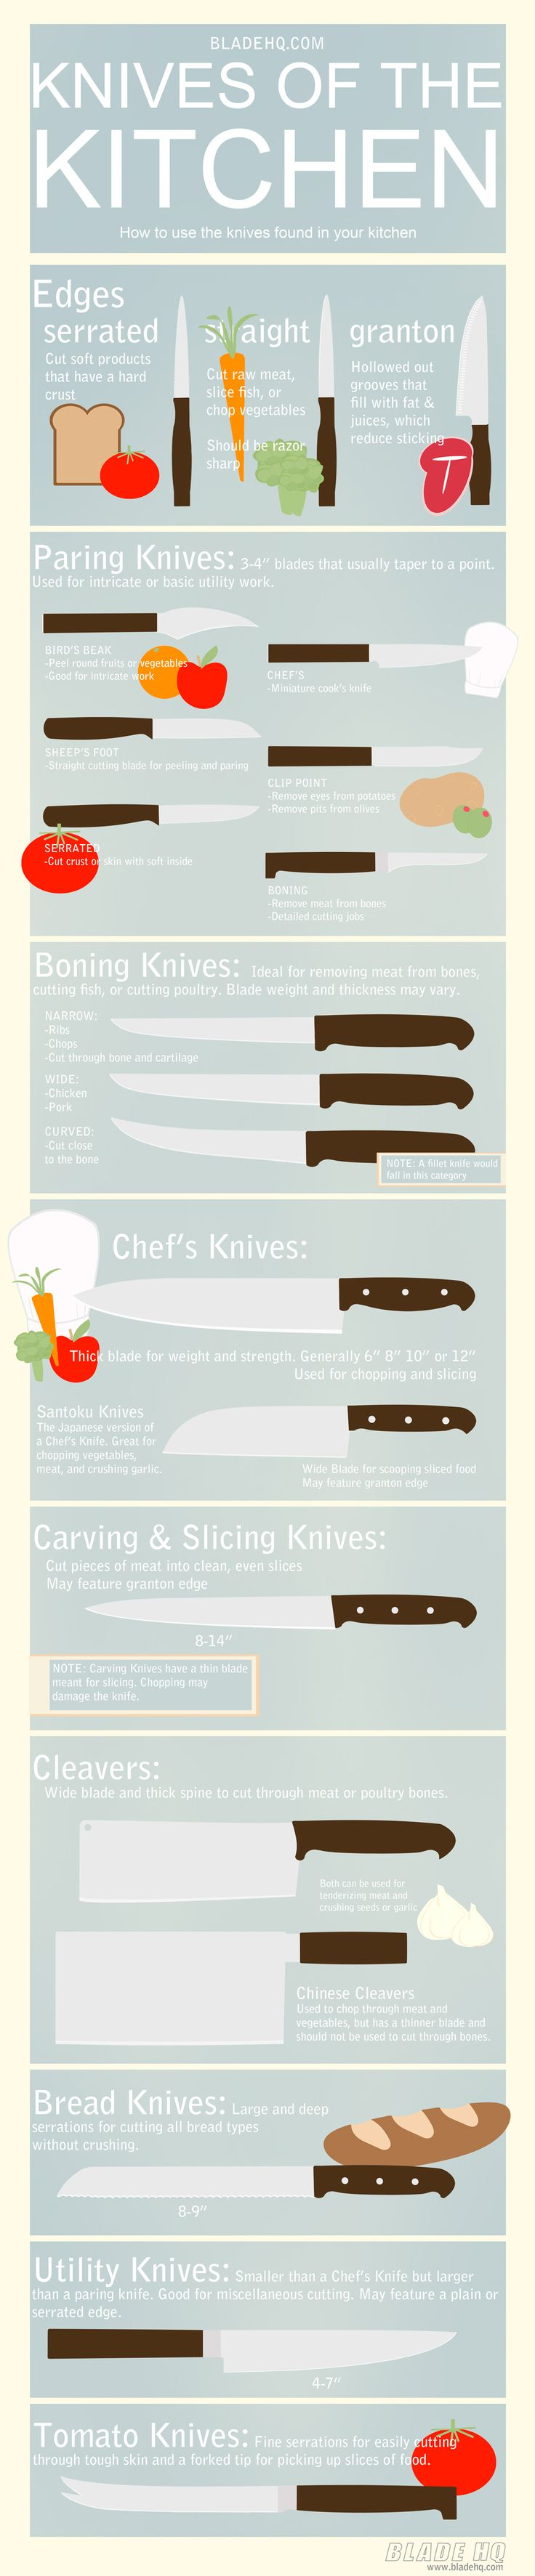 Knife guide. I usually just use the knife that I happen to pick up, but for when I want to make things easier on myself...: Kitchens, Fun Recipes, Kitchen Tips, Kitchen Knives, Food, Kitchen Infographics, Cooking Tips